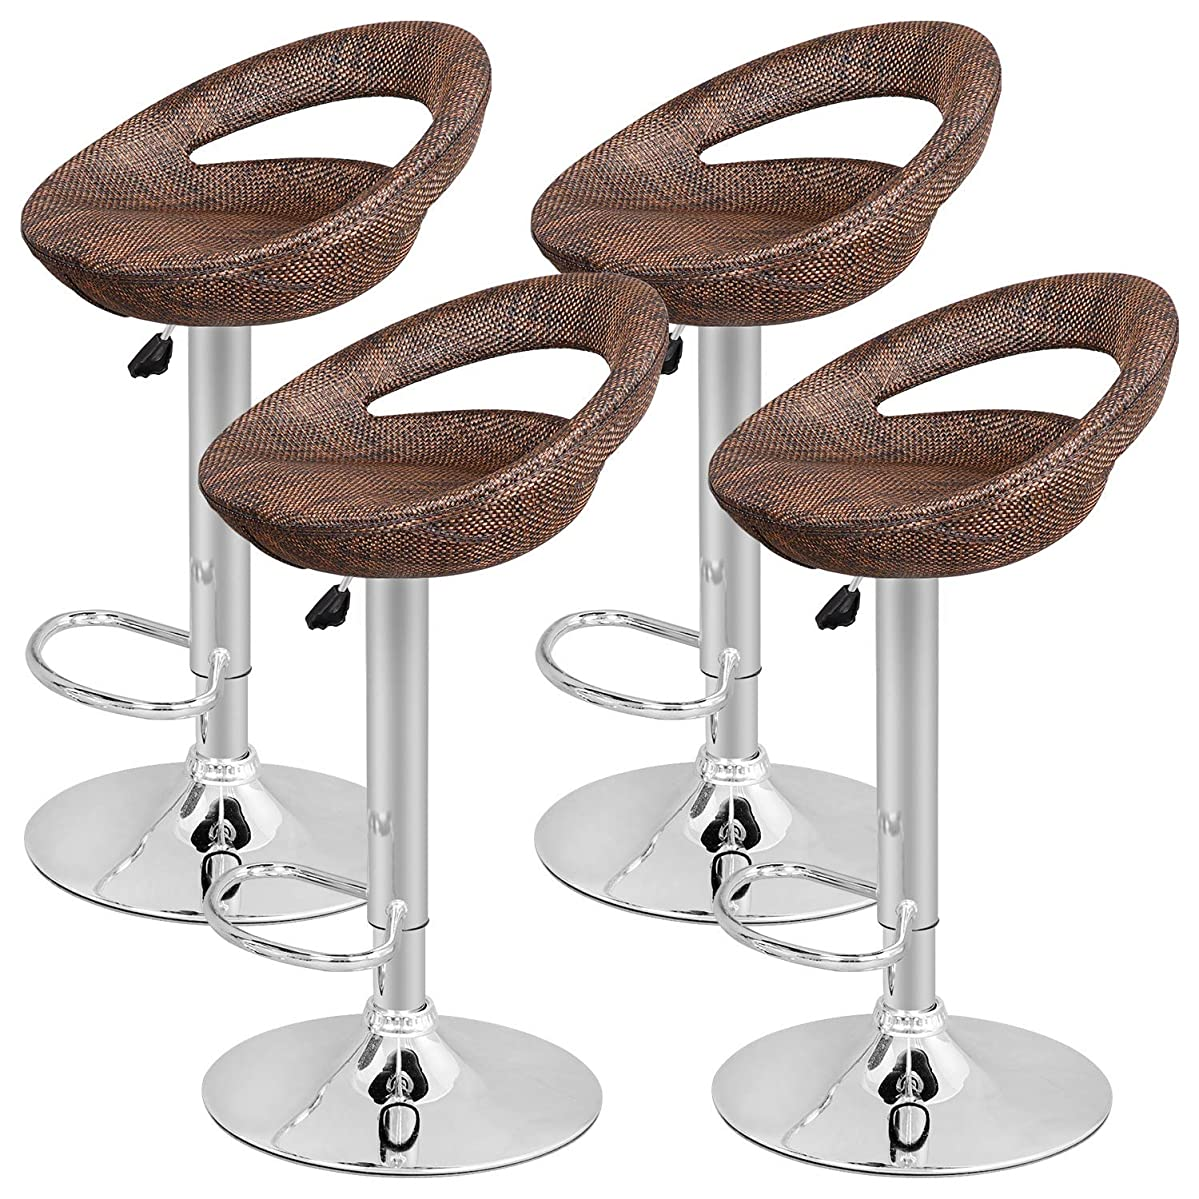 Nova Microdermabrasion Adjustable Pub Swivel Barstool All Weather Rattan Wicker Hydraulic Patio Barstool Indoor/Outdoor W/Open Back and Chrome Footrest, Set of 4